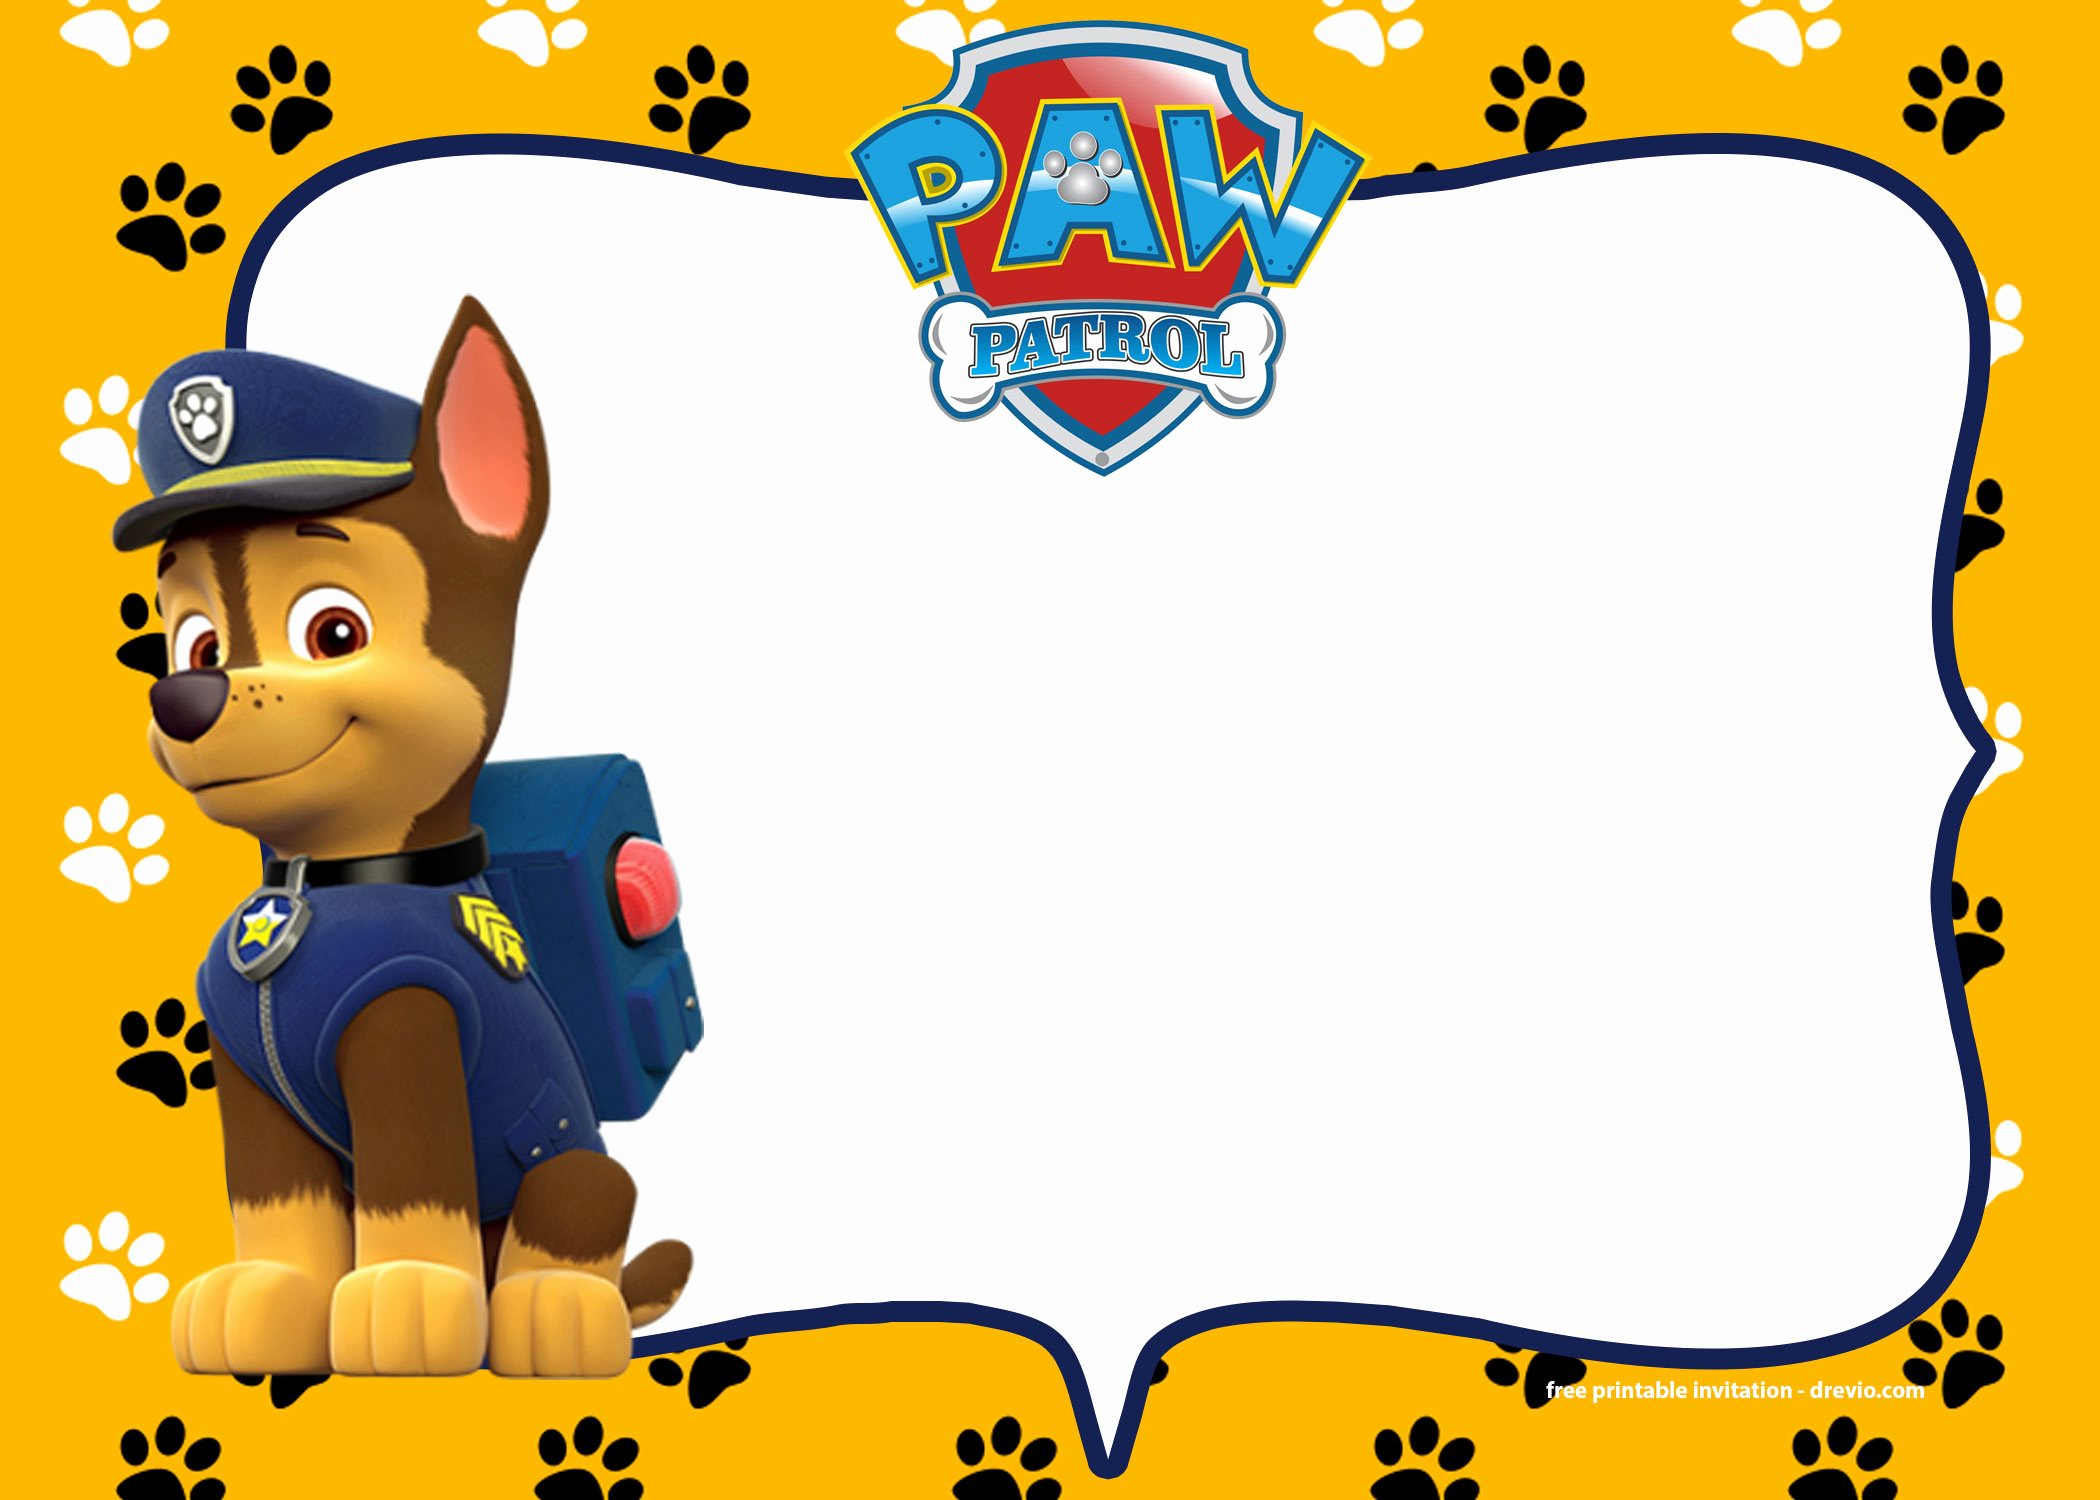 Paw Patrol Invitation Template Awesome Paw Patrol Invitation Template – Blank Printable – Chase